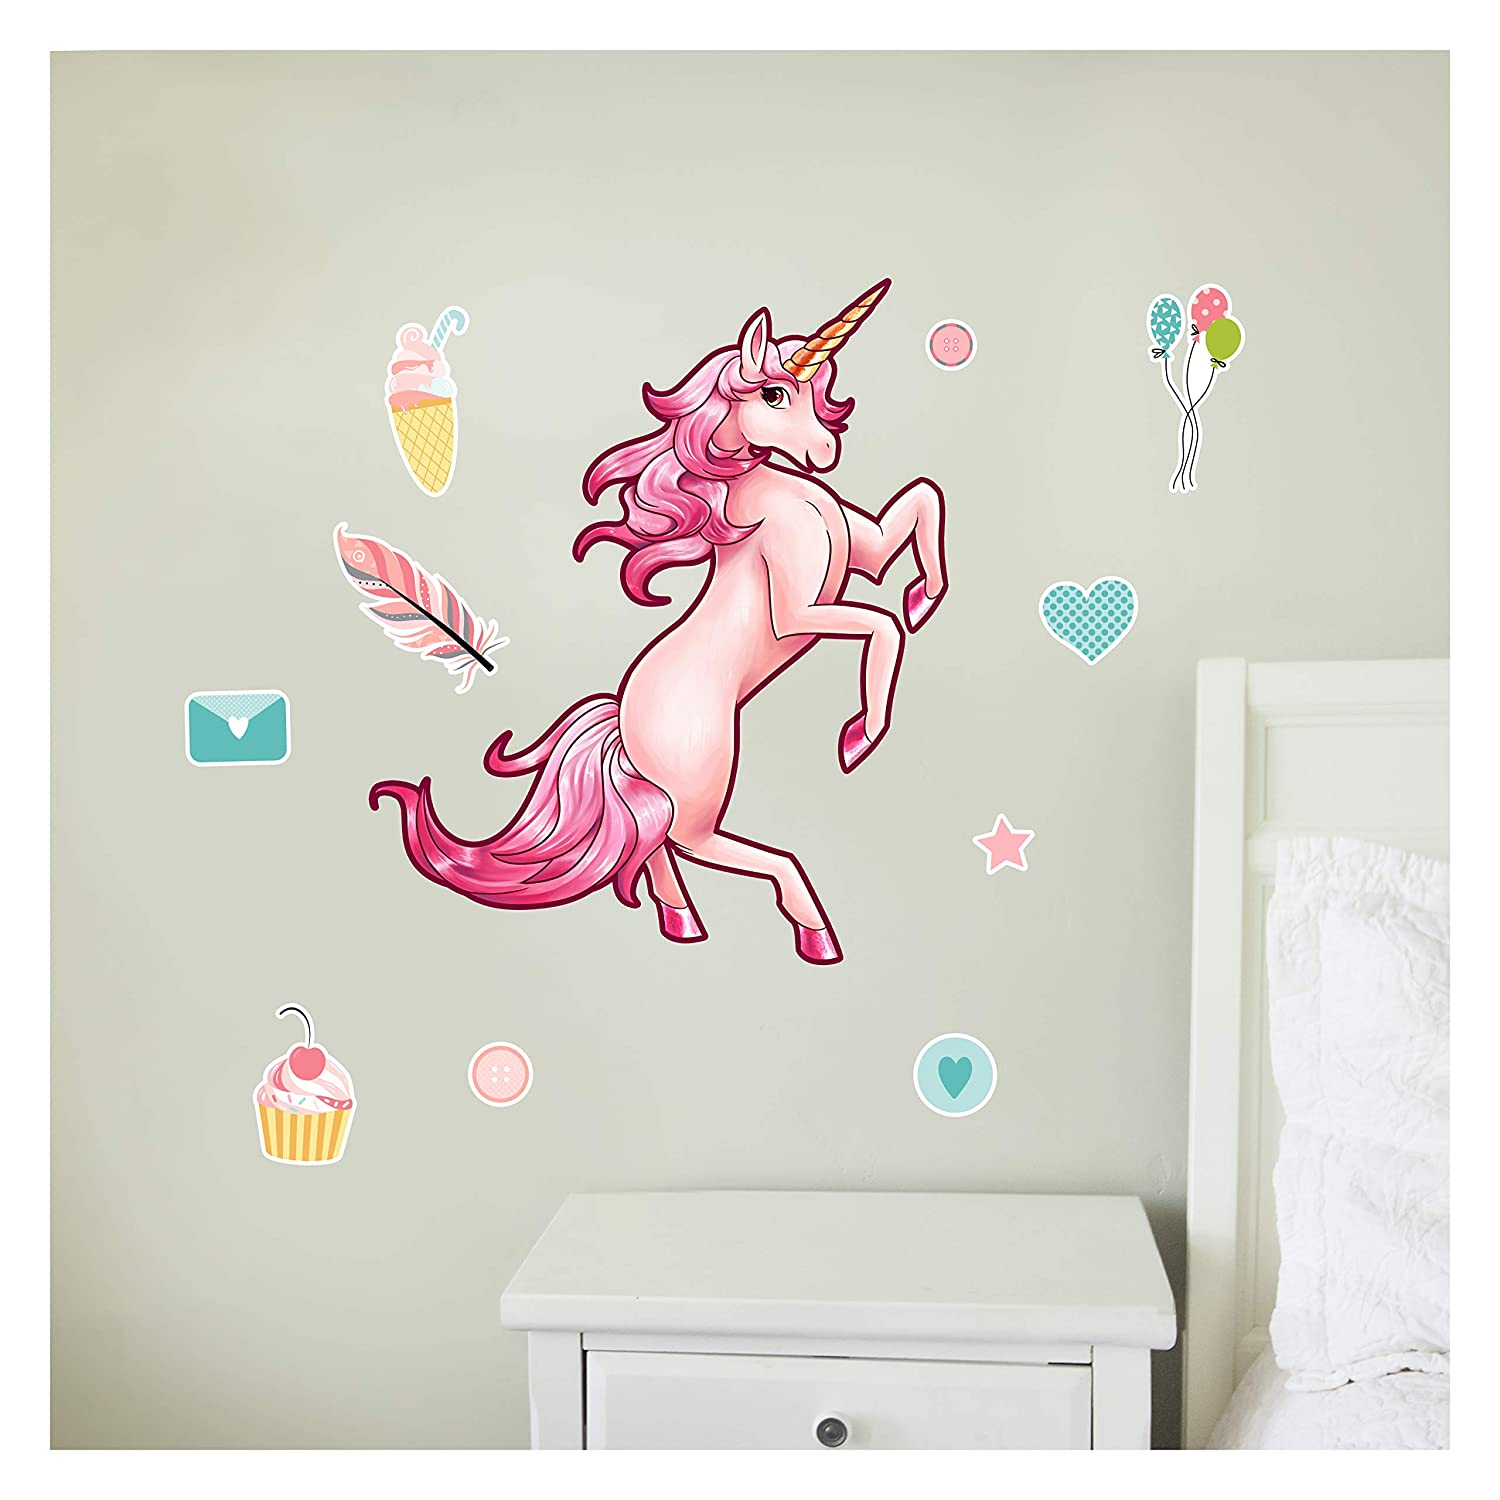 Pink Unicorn Wall Decal - 12 Piece Augmented Reality Unicorn Decal - Kids Wall Stickers for Bedroom are Easy to Put Up On Wall & Peel Off - Unicorn Room Decor for Girls